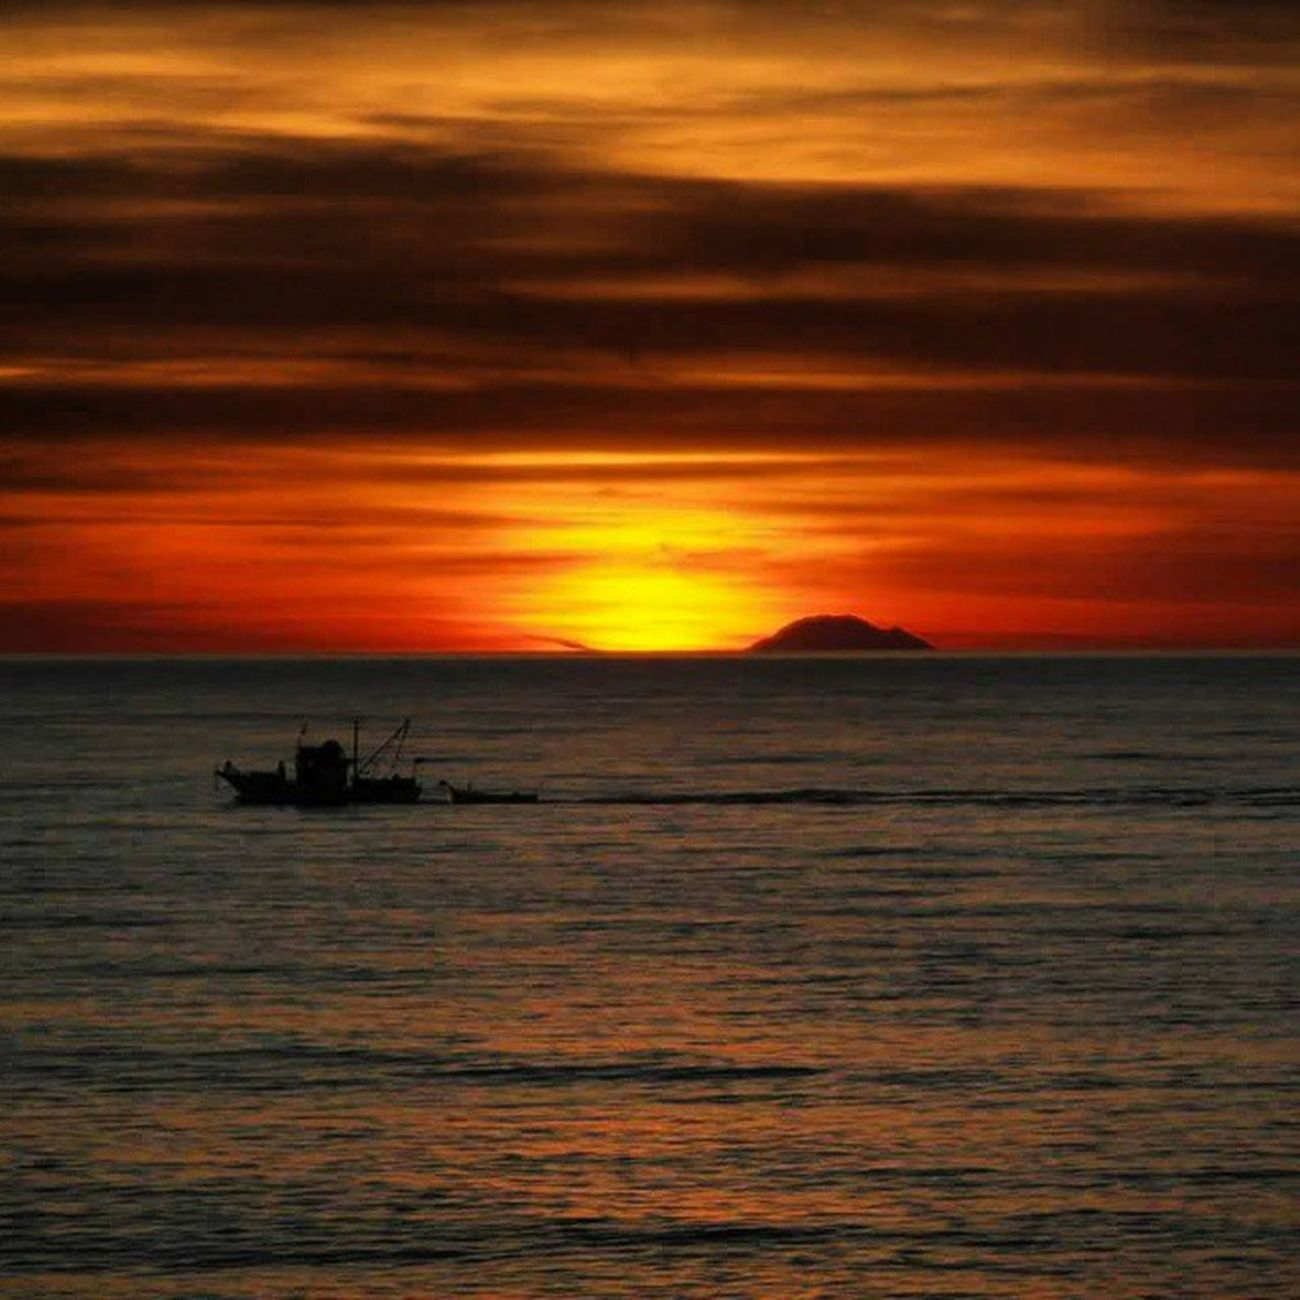 Amen. Milazzo PuertadelSol Sunset Tramonto Sicily Spring Red Sea Fotogrammi Follow Eolie Sun Photoofday Perspective Lfl Pic Moments Fantasticview Amen Beautiful Nofilter Nocrop Valorizziamoci Siciliabedda Terresicule